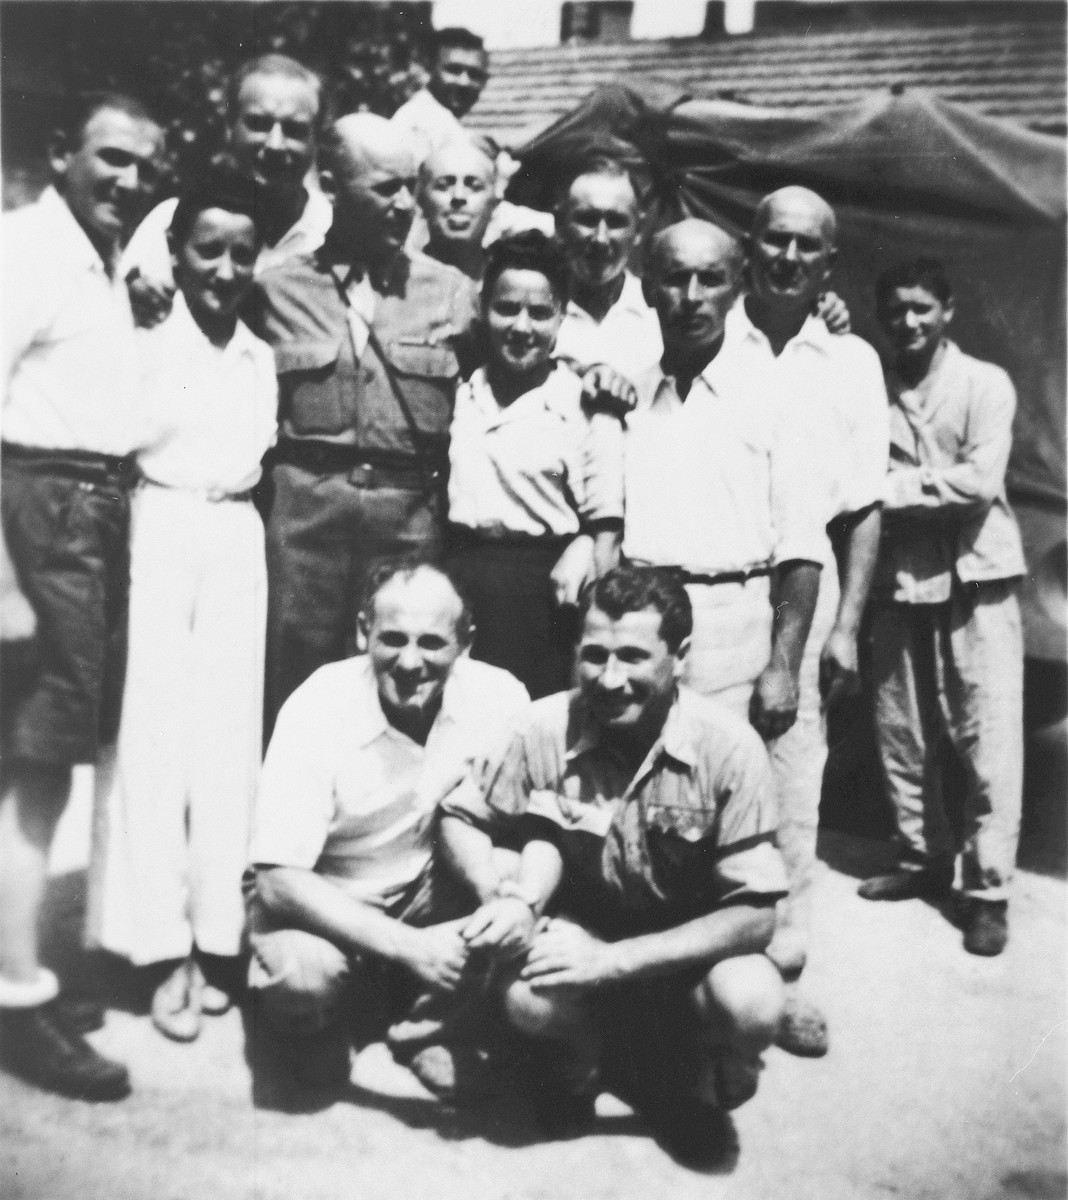 Group portrait of Jewish survivors (largely from the Kovno ghetto) at the St. Ottilien displaced persons hospital camp in Bavaria.  Among those pictured are survivor Michael Hofmekler (front left); his brother, U.S. serviceman Robert Hofmekler; Motel, Elia and Isaak Borstein; Henia Durmashkin (left) and Fania Durmashkin-Beiker (right)